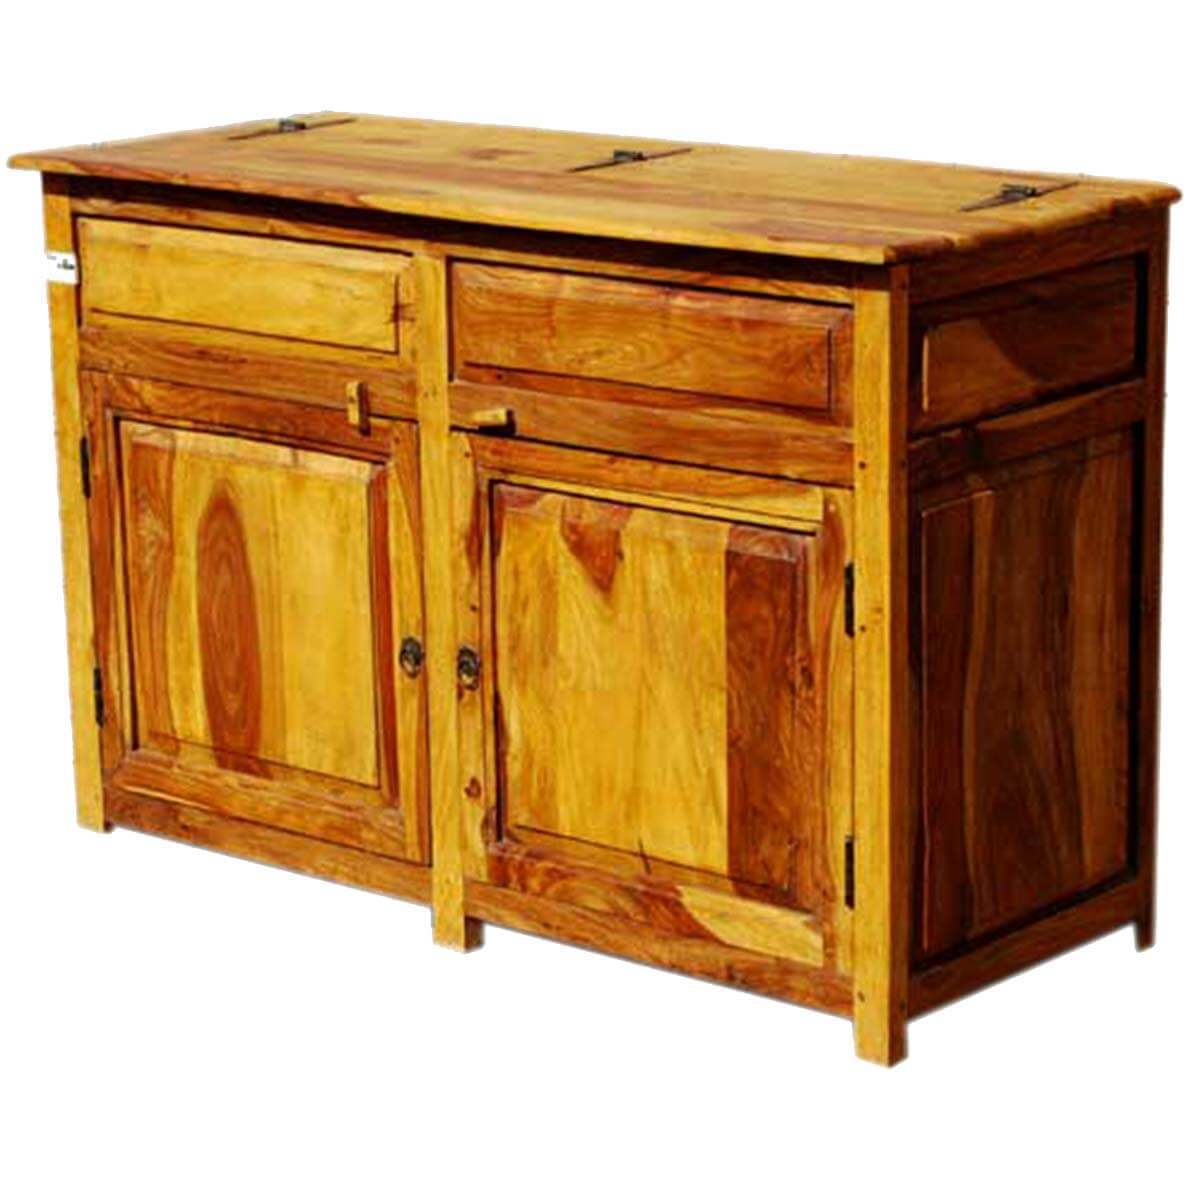 Dallas Ranch Solid Wood 2 Door Rustic Kitchen Storage Buffet Cabinet